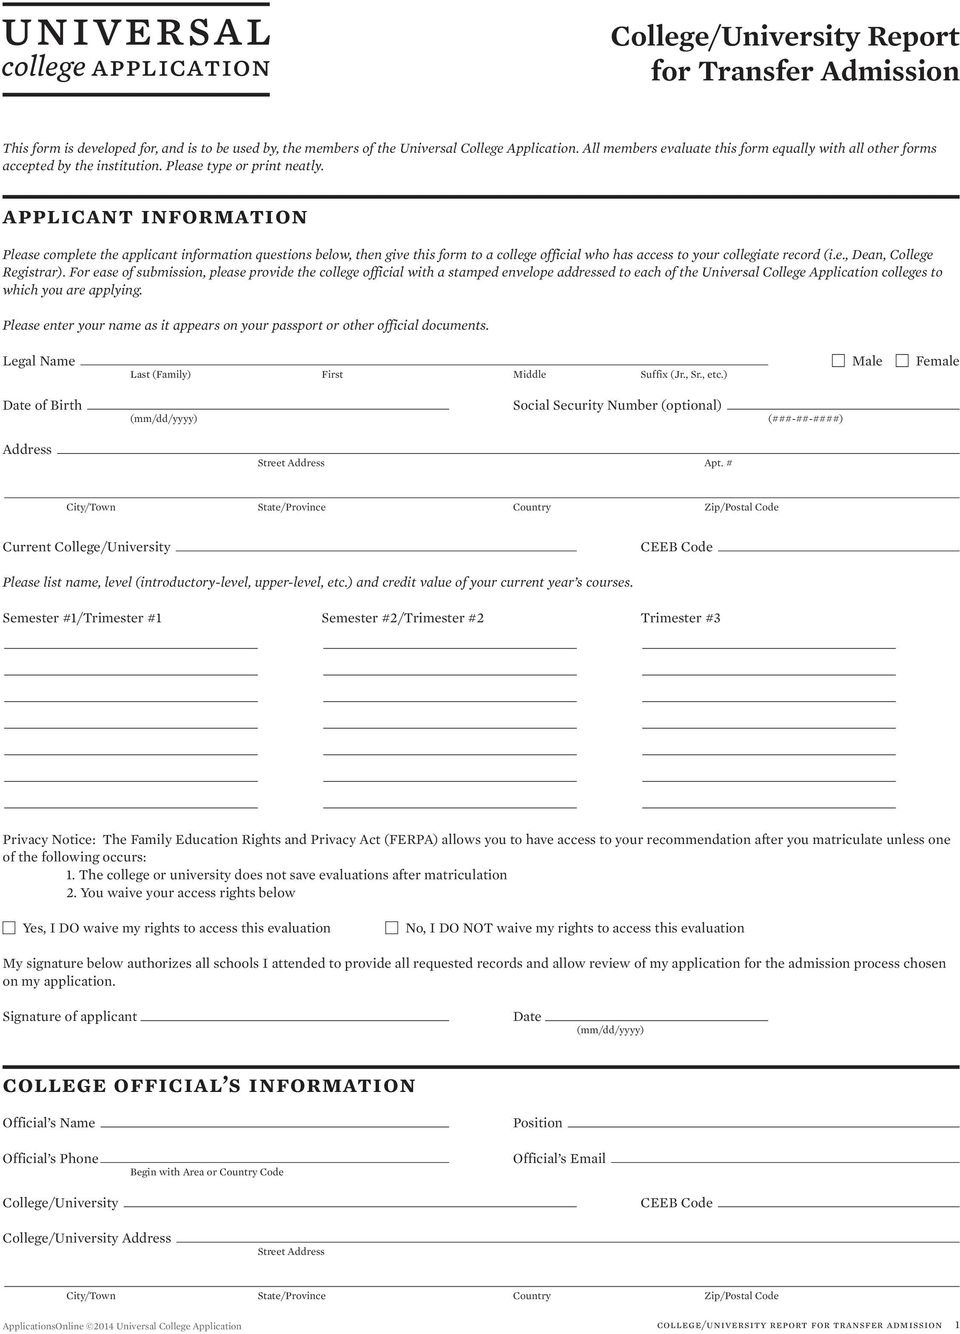 applicant information Please complete the applicant information questions below, then give this form to a college official who has access to your collegiate record (i.e., Dean, College Registrar).